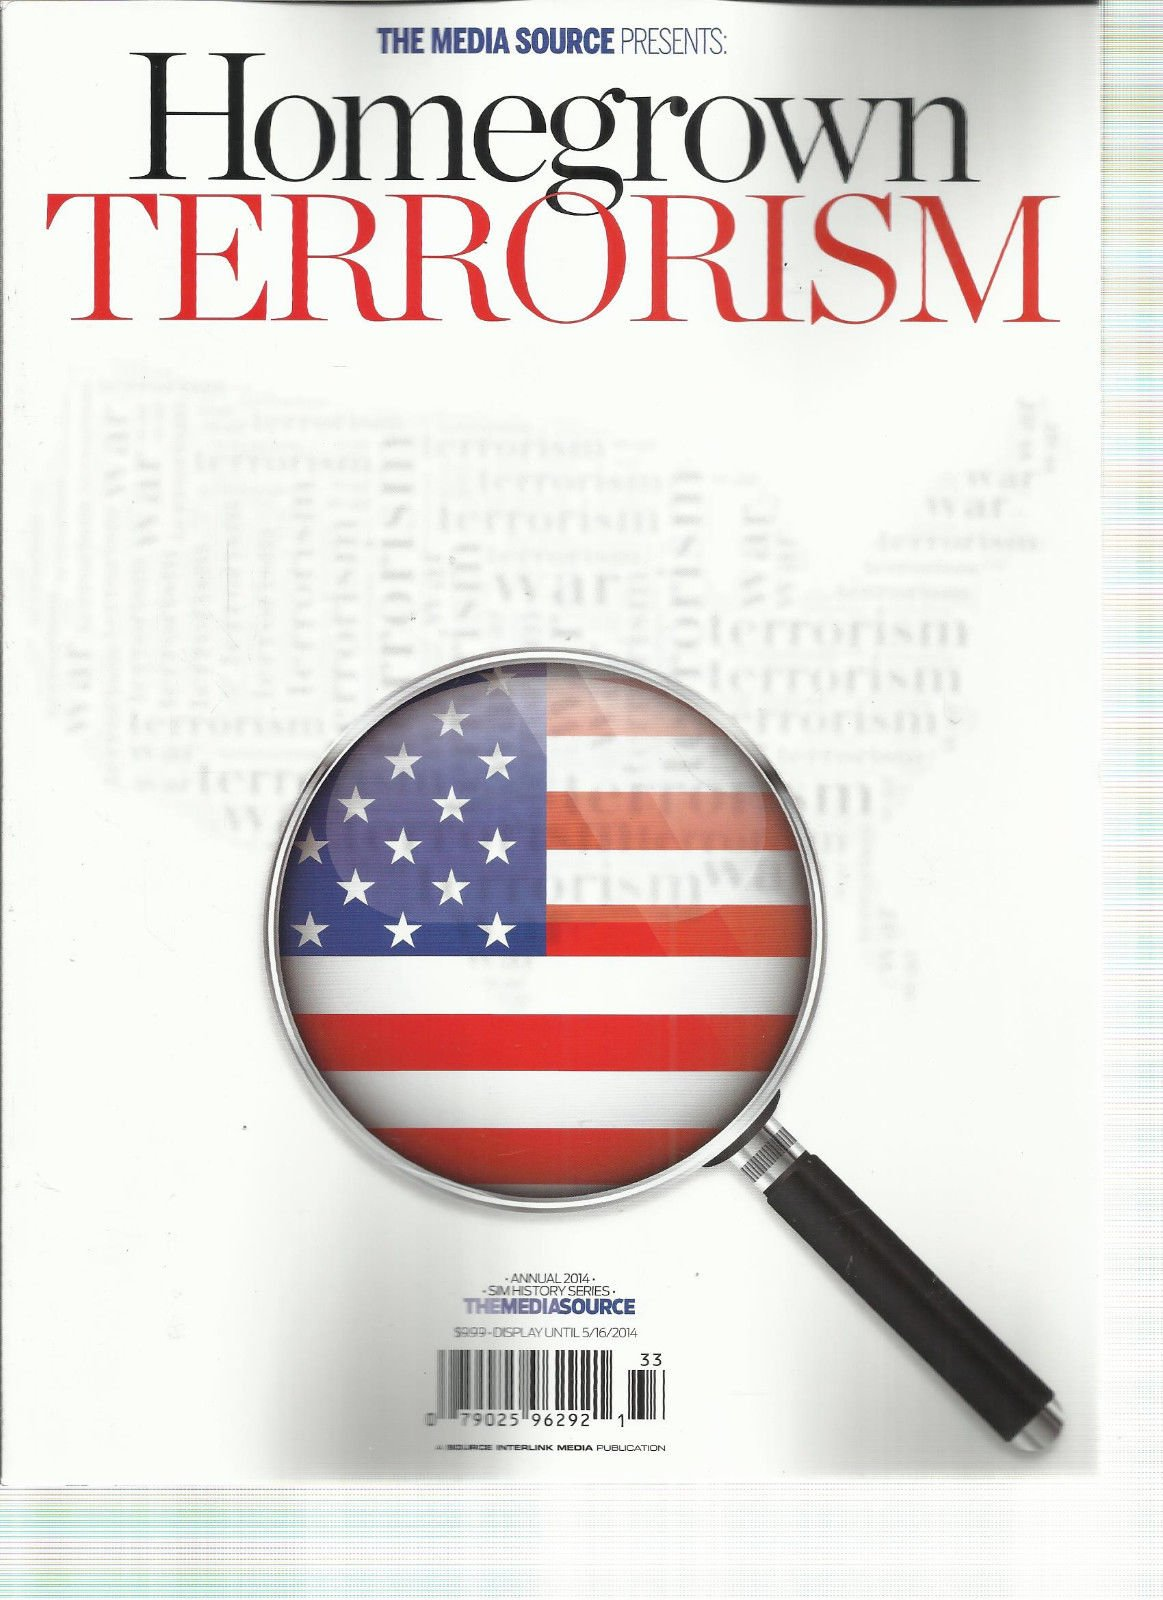 THE MEDIA SOURCE PRESENTS, ANNUAL. 2014 HOMEGROWN TERRORISM